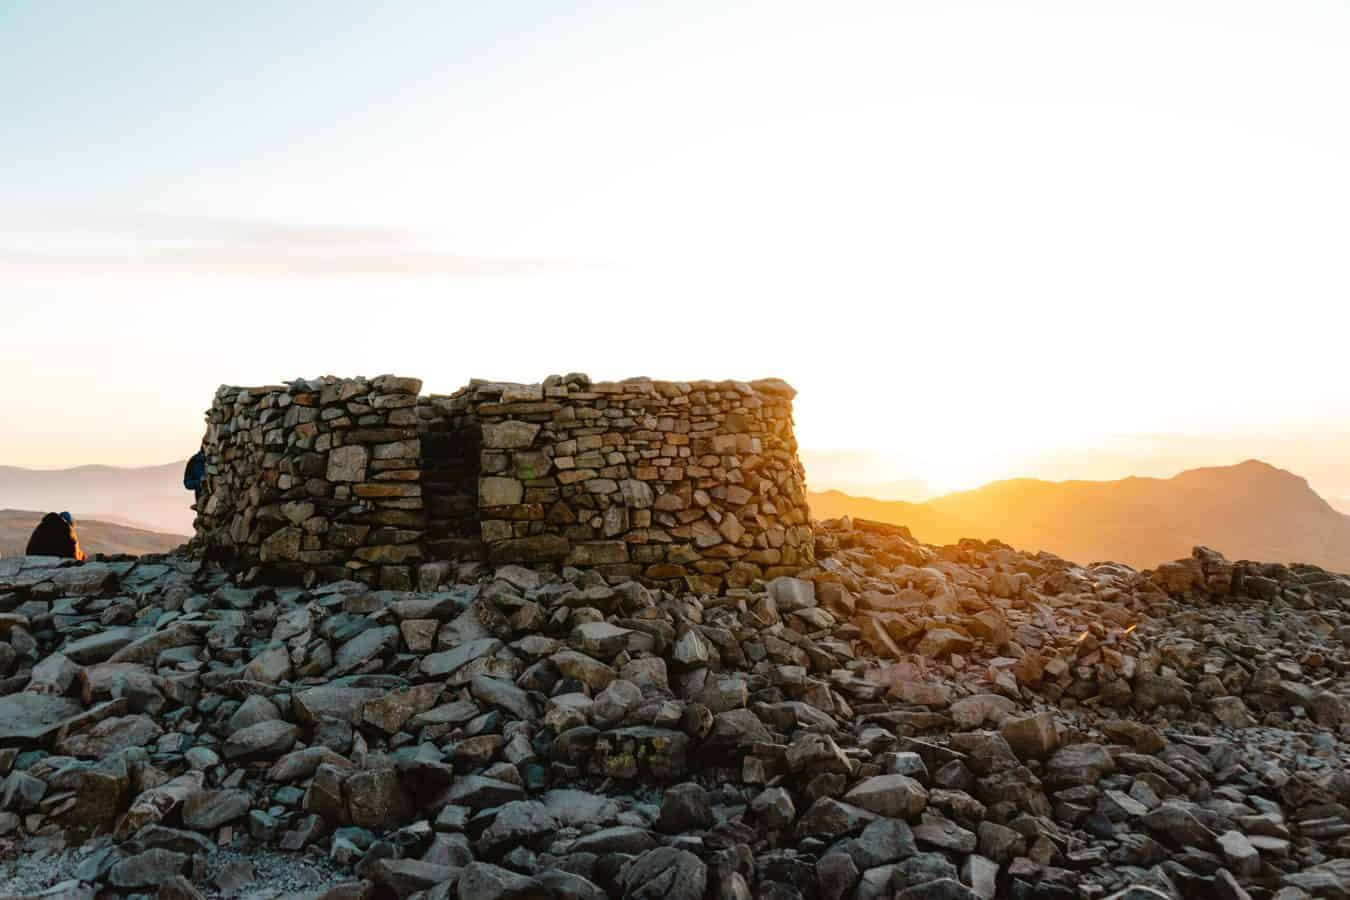 Cairn at the top of Scafell Pike in the Lake District, the highest of the 214 Wainwrights, also listed in alphabetical order